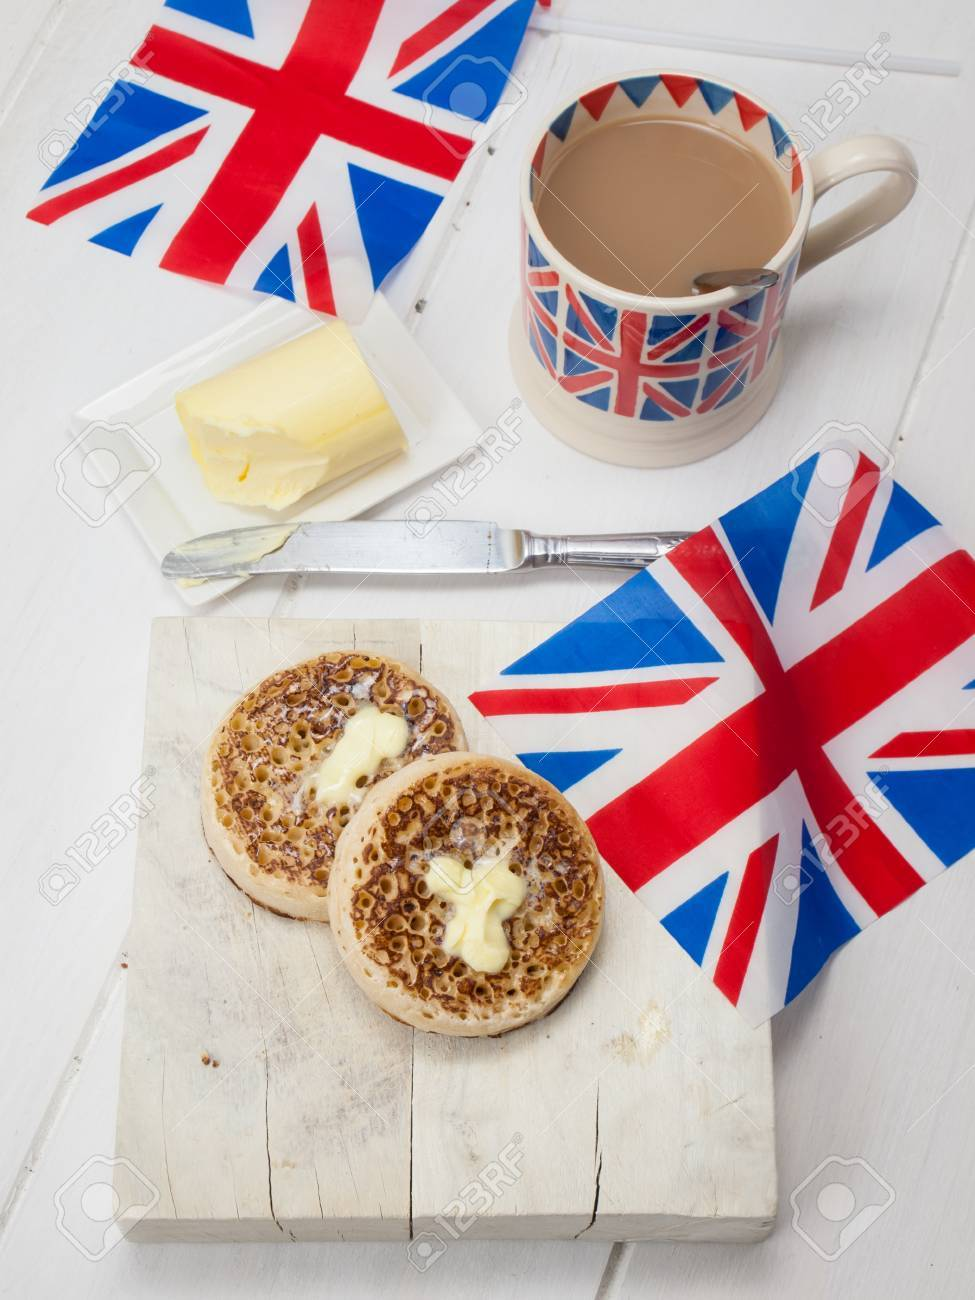 [Image: 28880325-english-crumpets-with-butter-on...jack-m.jpg]